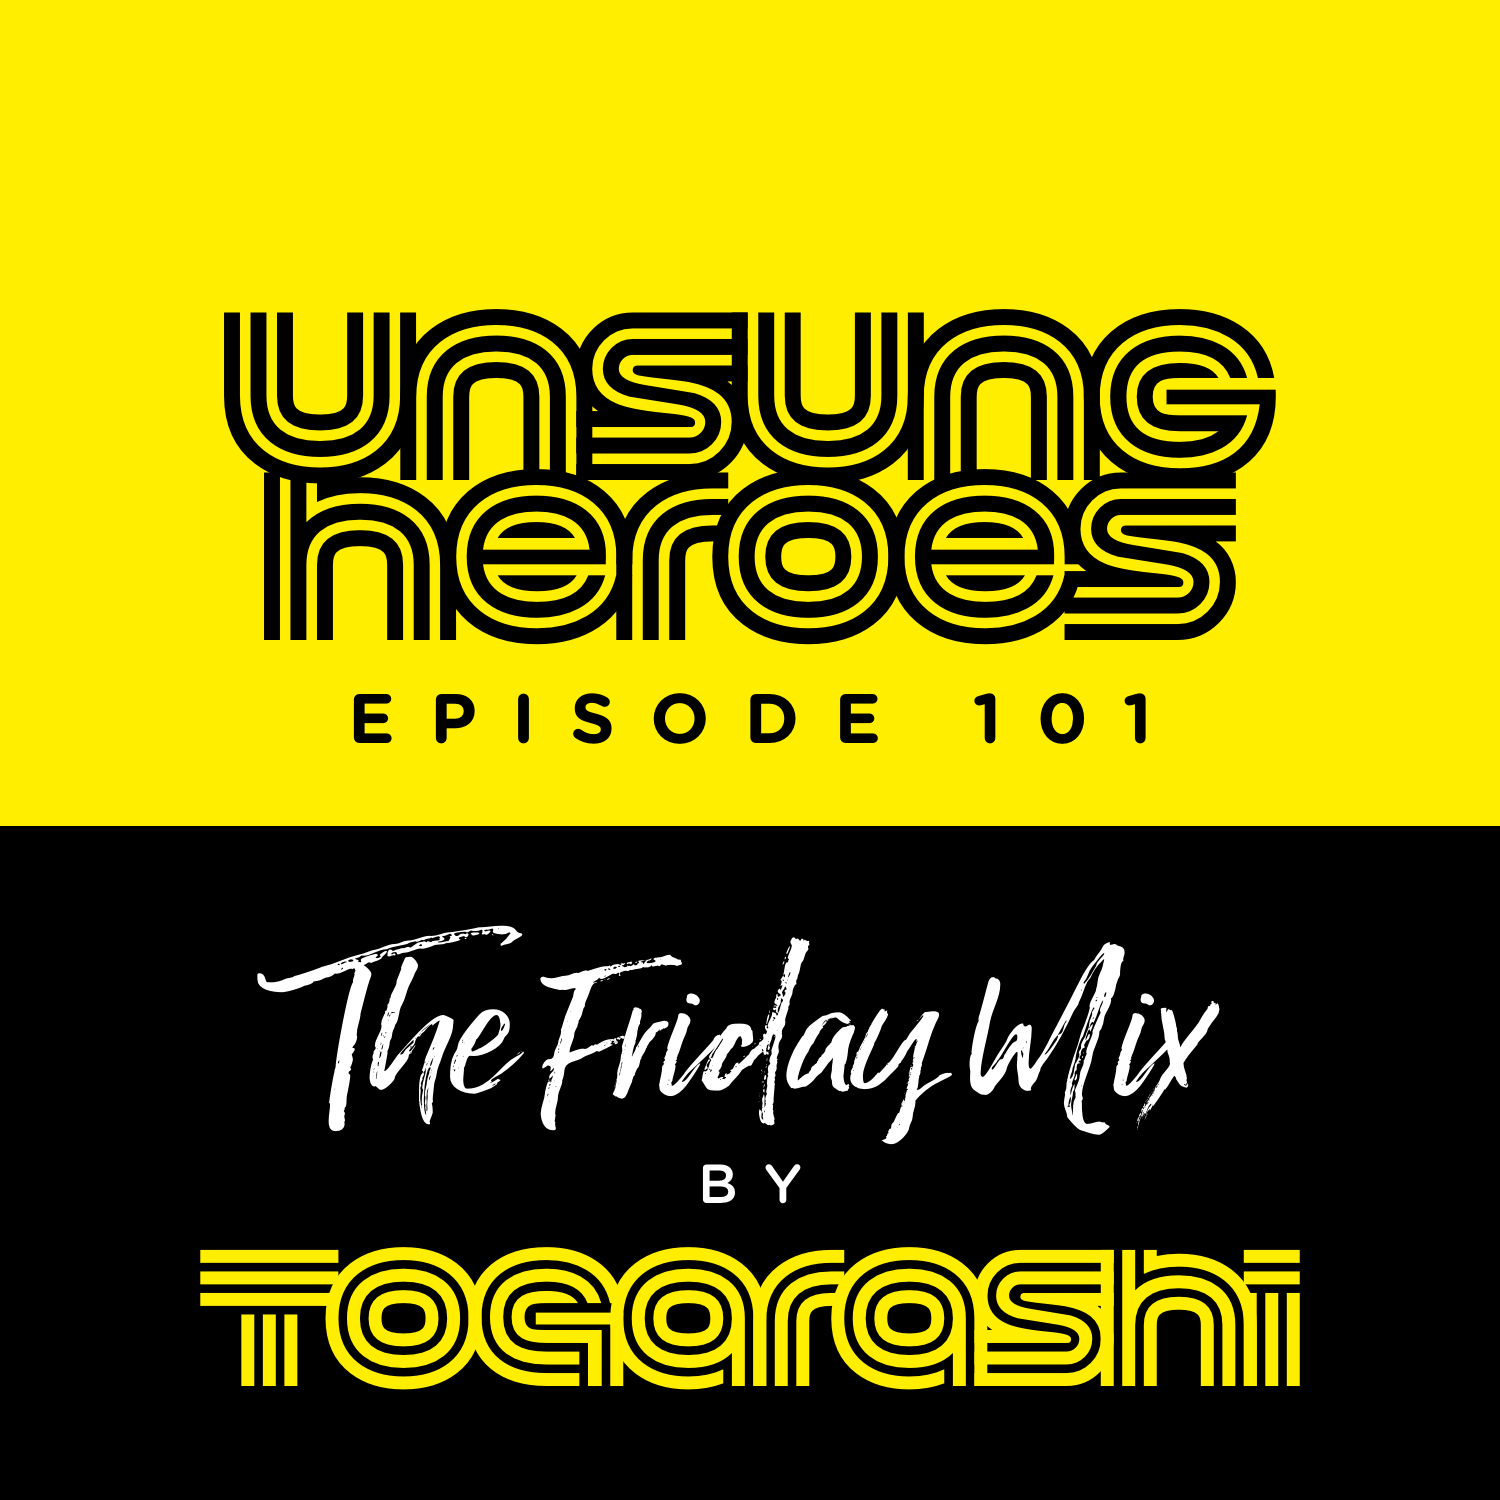 #101 Unsung Heroes